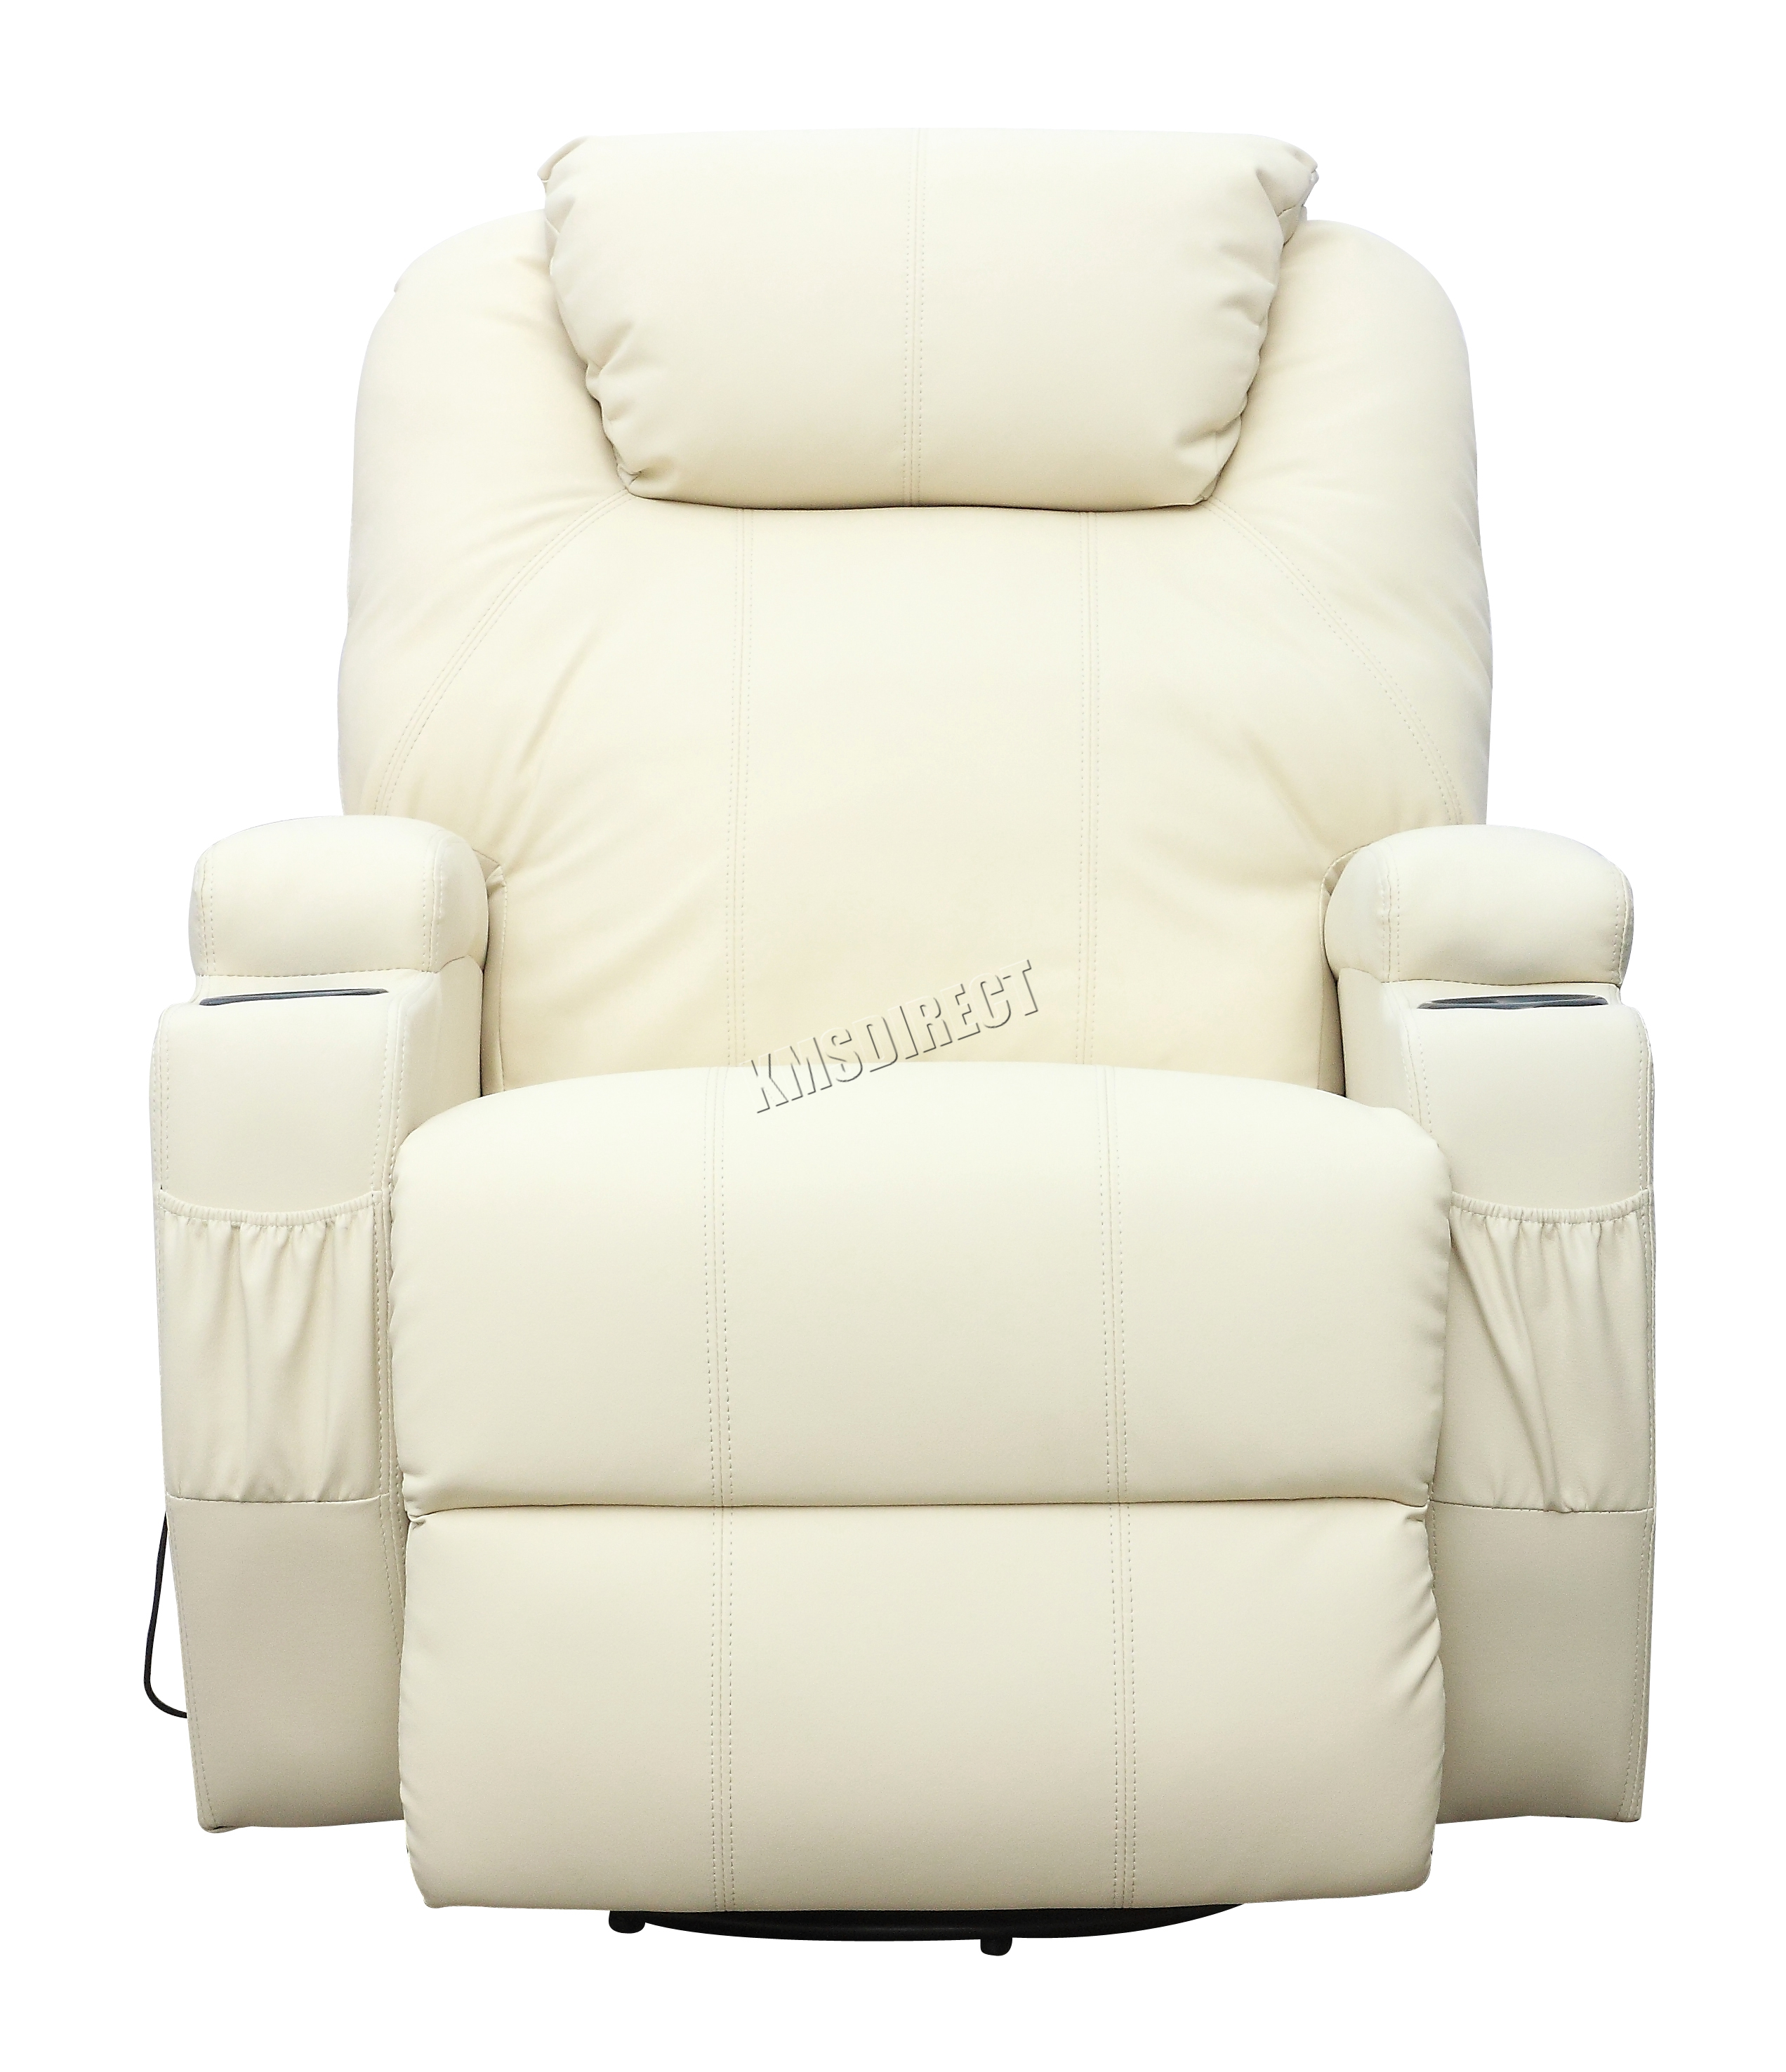 Massage Sofa Foxhunter Bonded Leather Massage Recliner Chair Cinema